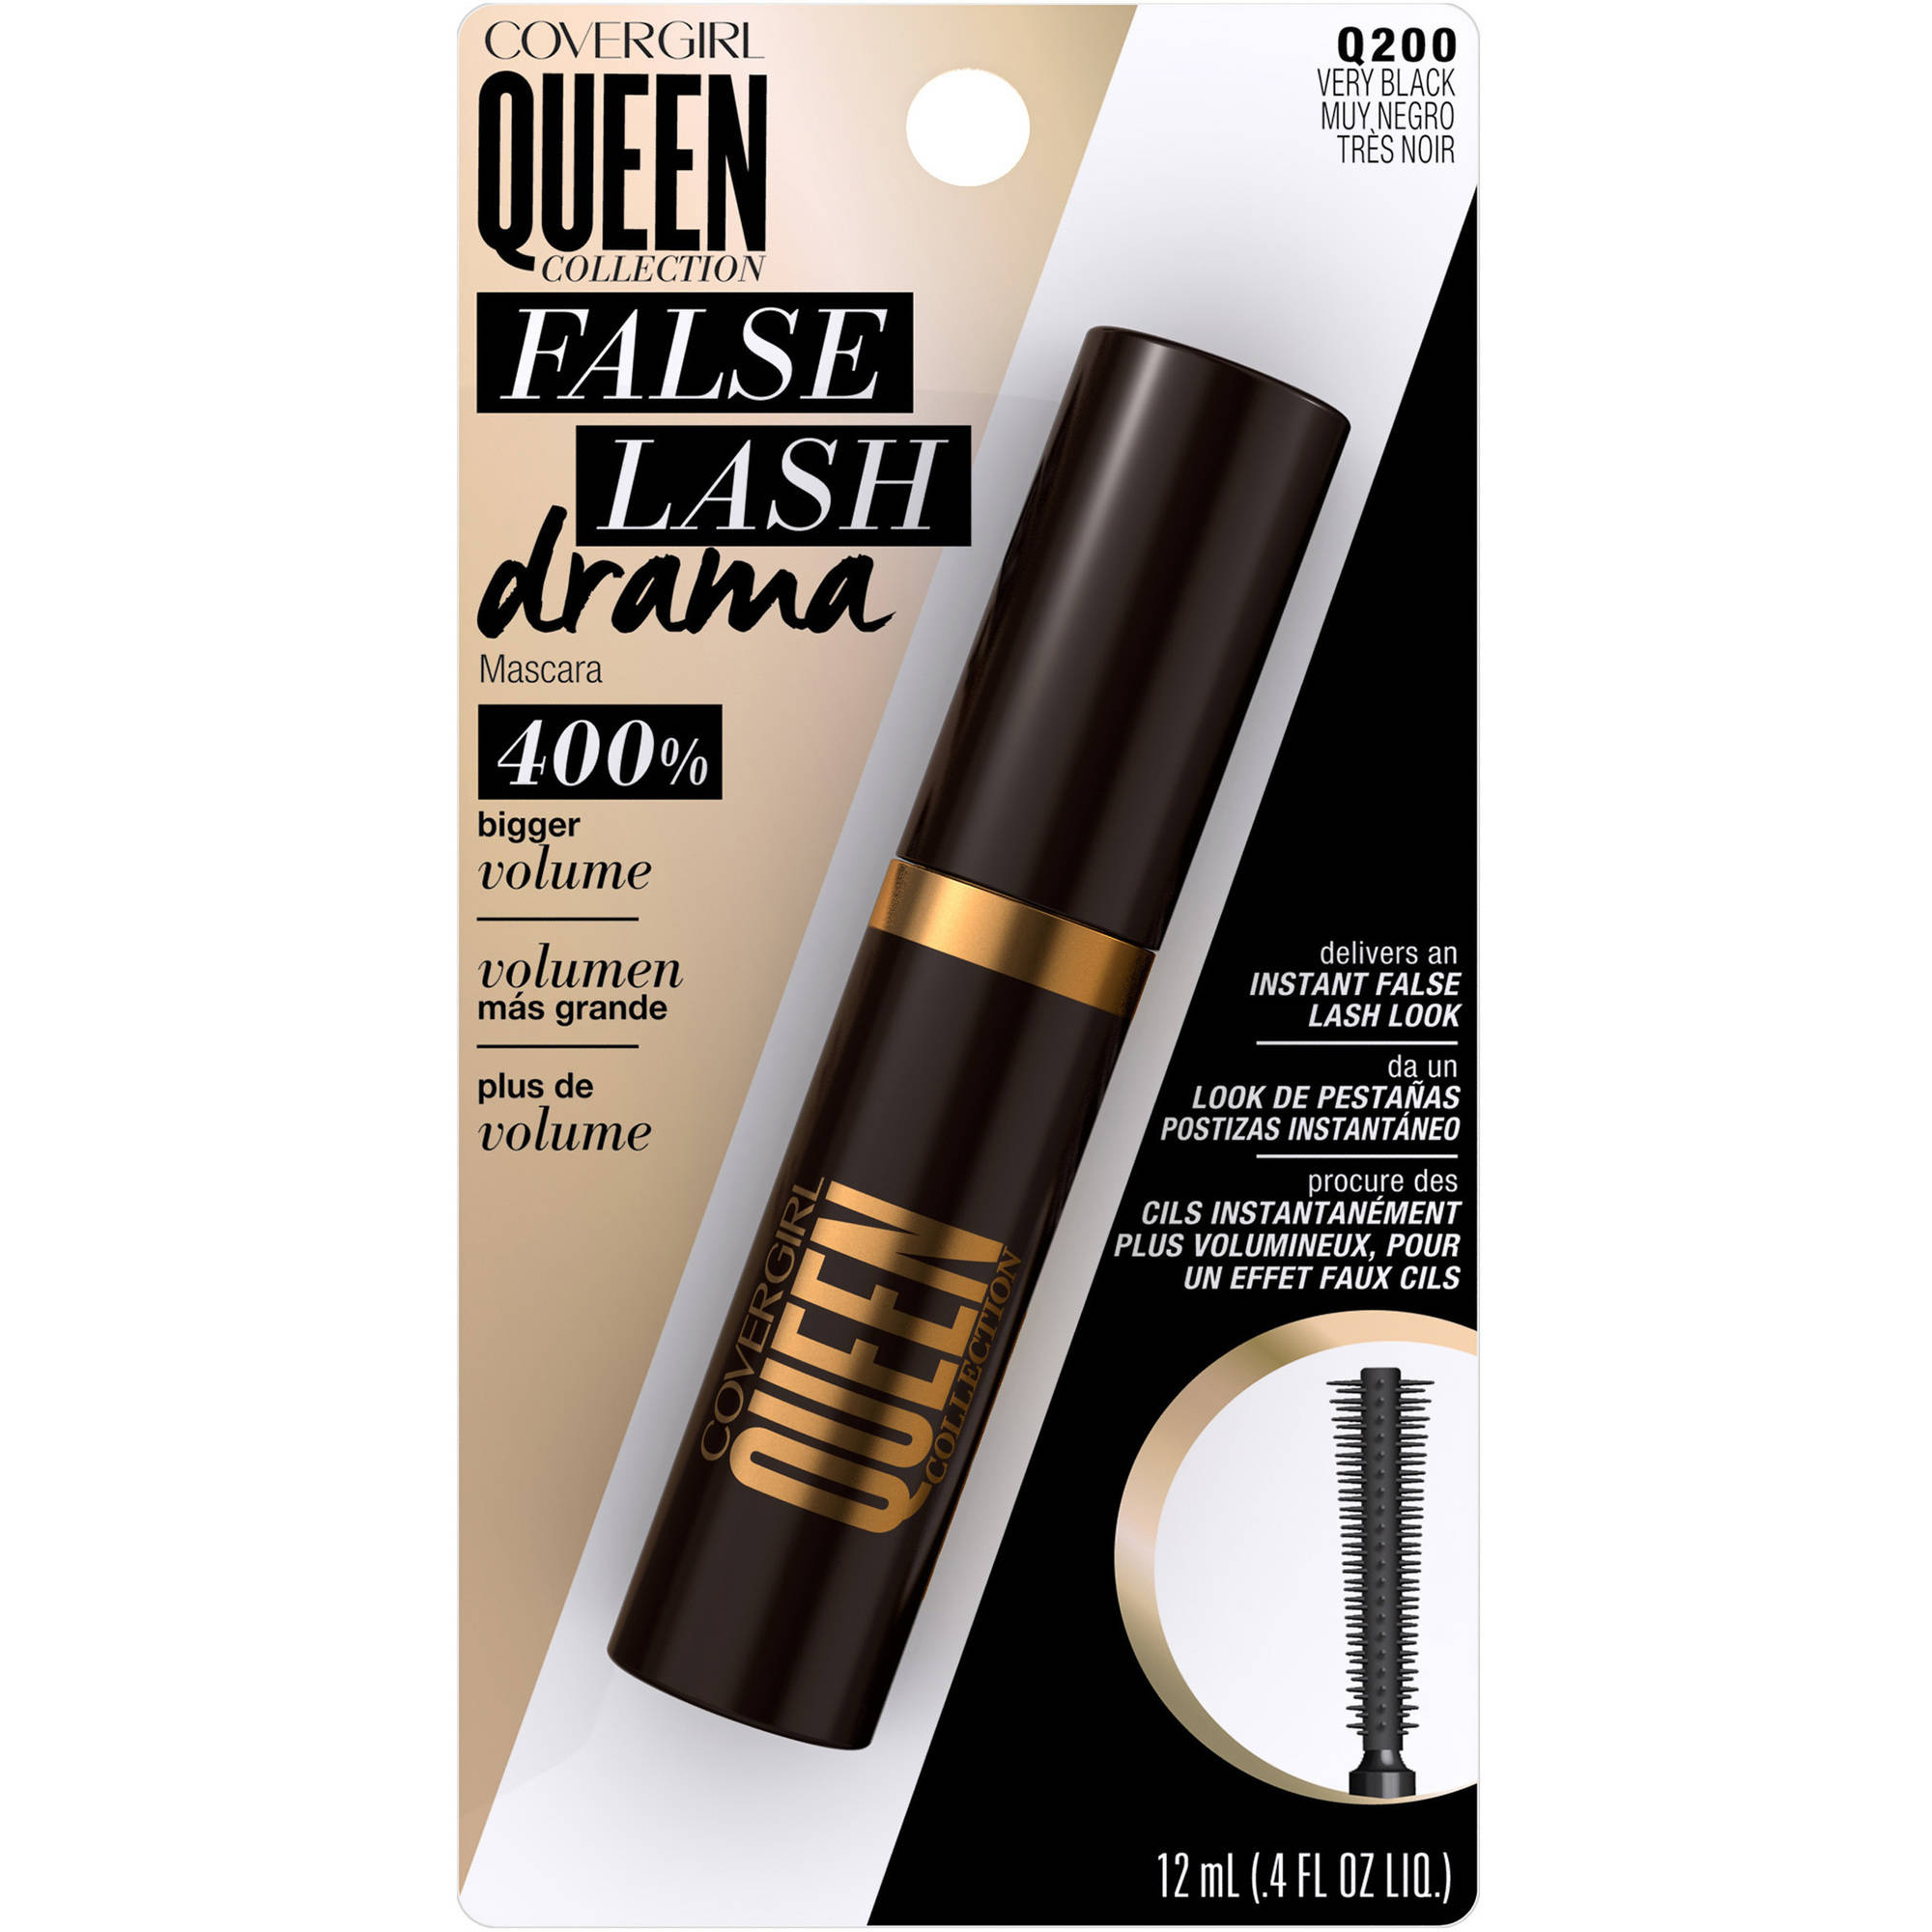 COVERGIRL Queen Collection False Lash Drama Mascara, Very Black, .4 fl oz